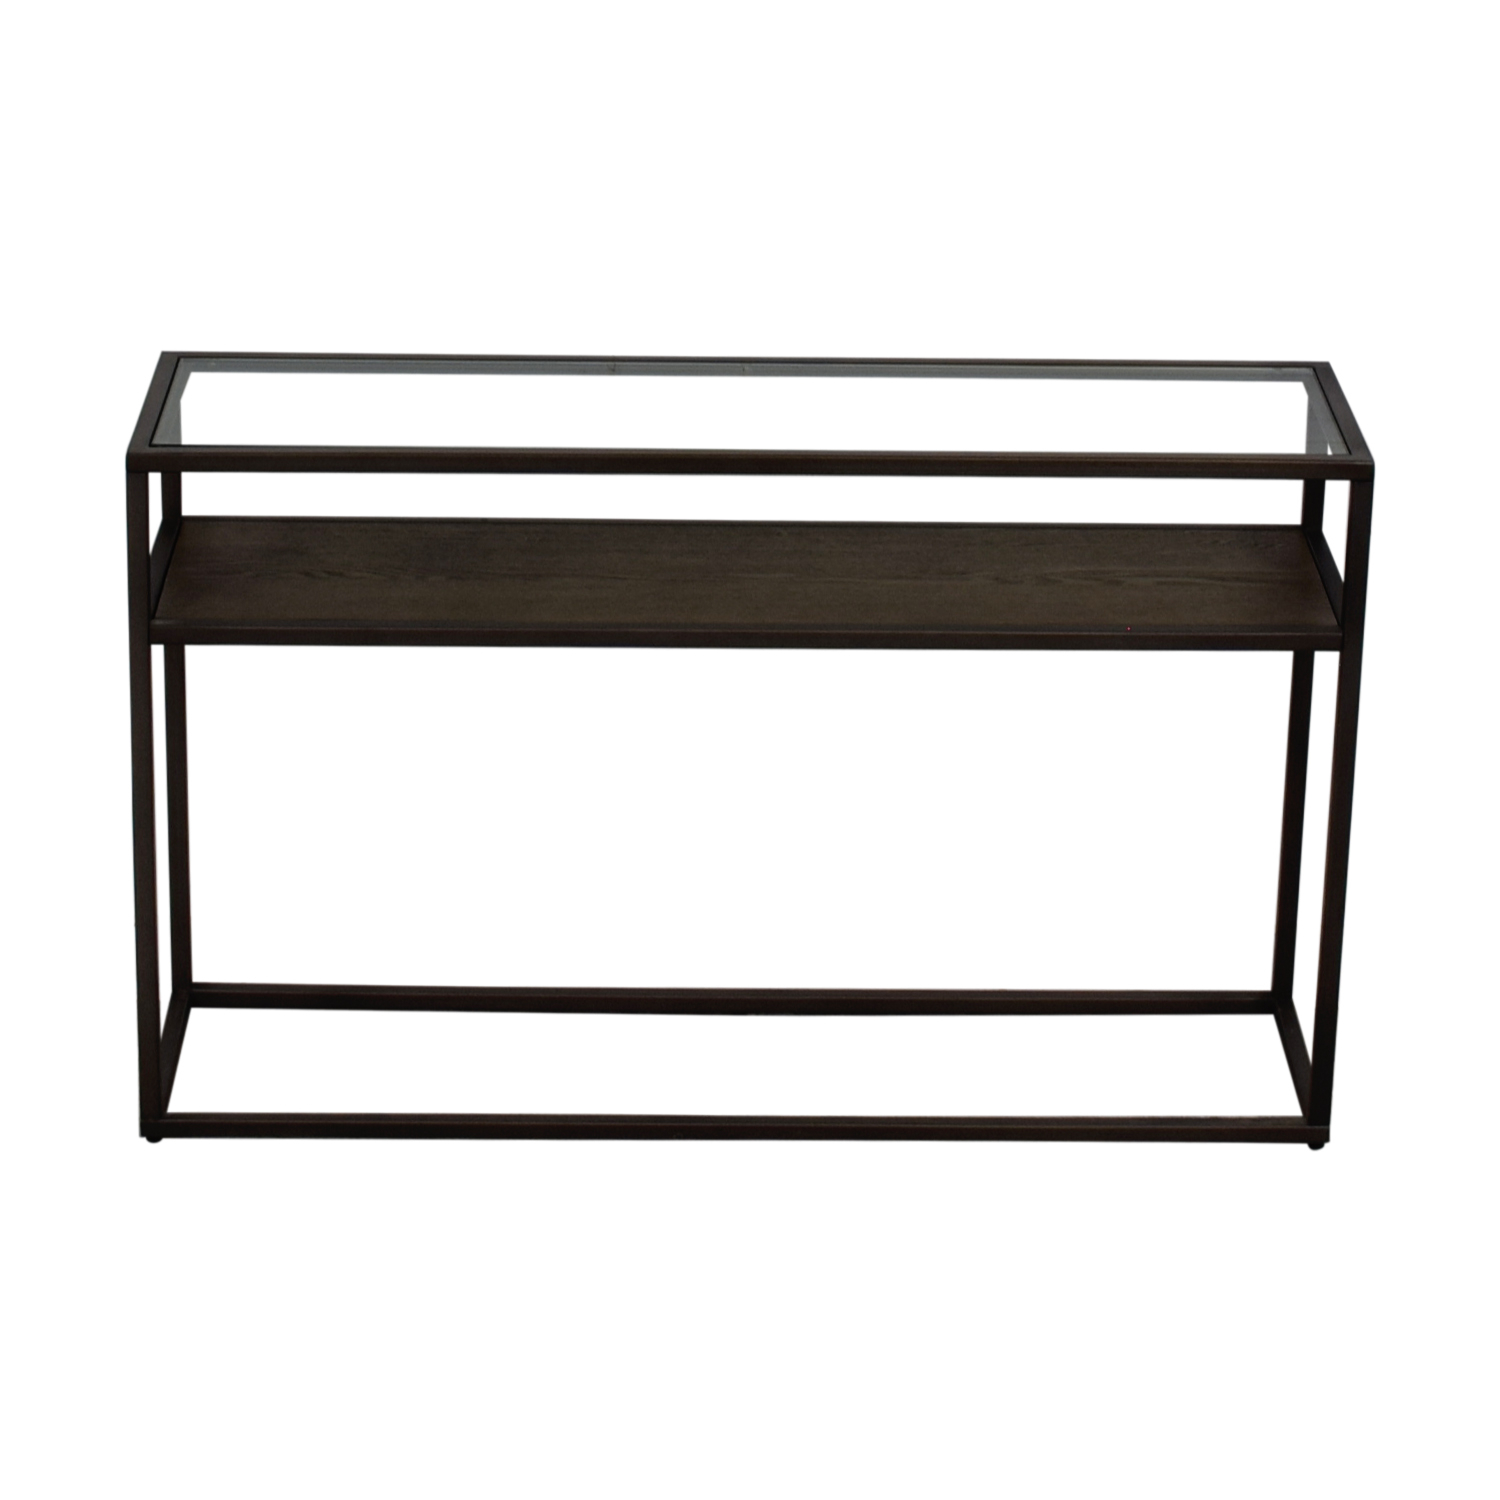 Crate & Barrel Switch Glass Wood And Metal Console Table With Regard To Switch Console Tables (View 6 of 30)